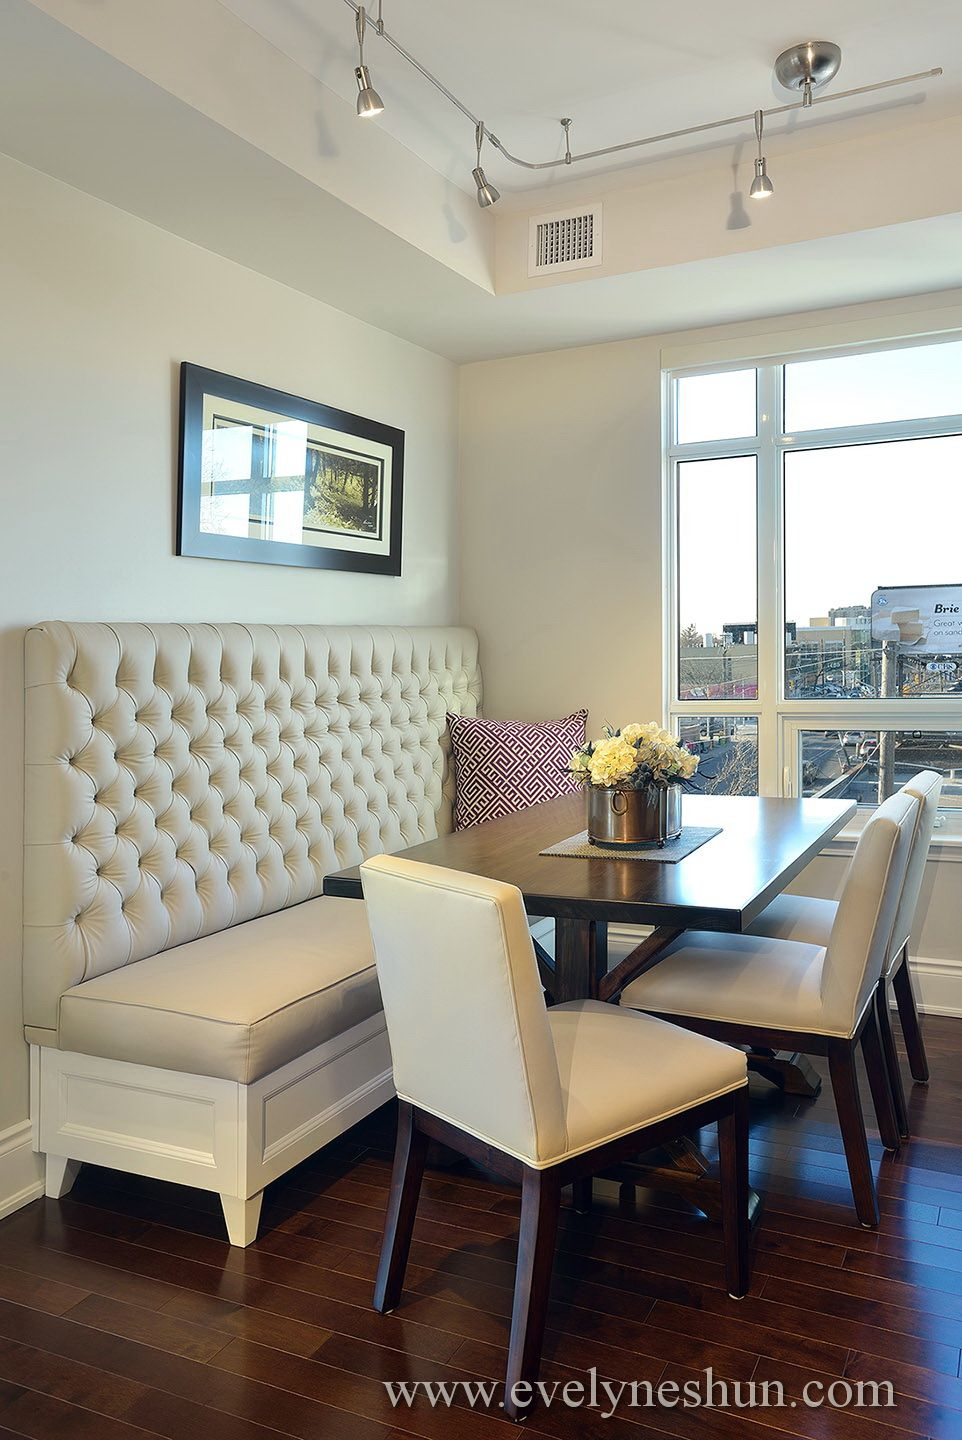 Admirable Banquette On Kitchen Nook Wall Sweet Times In South Machost Co Dining Chair Design Ideas Machostcouk